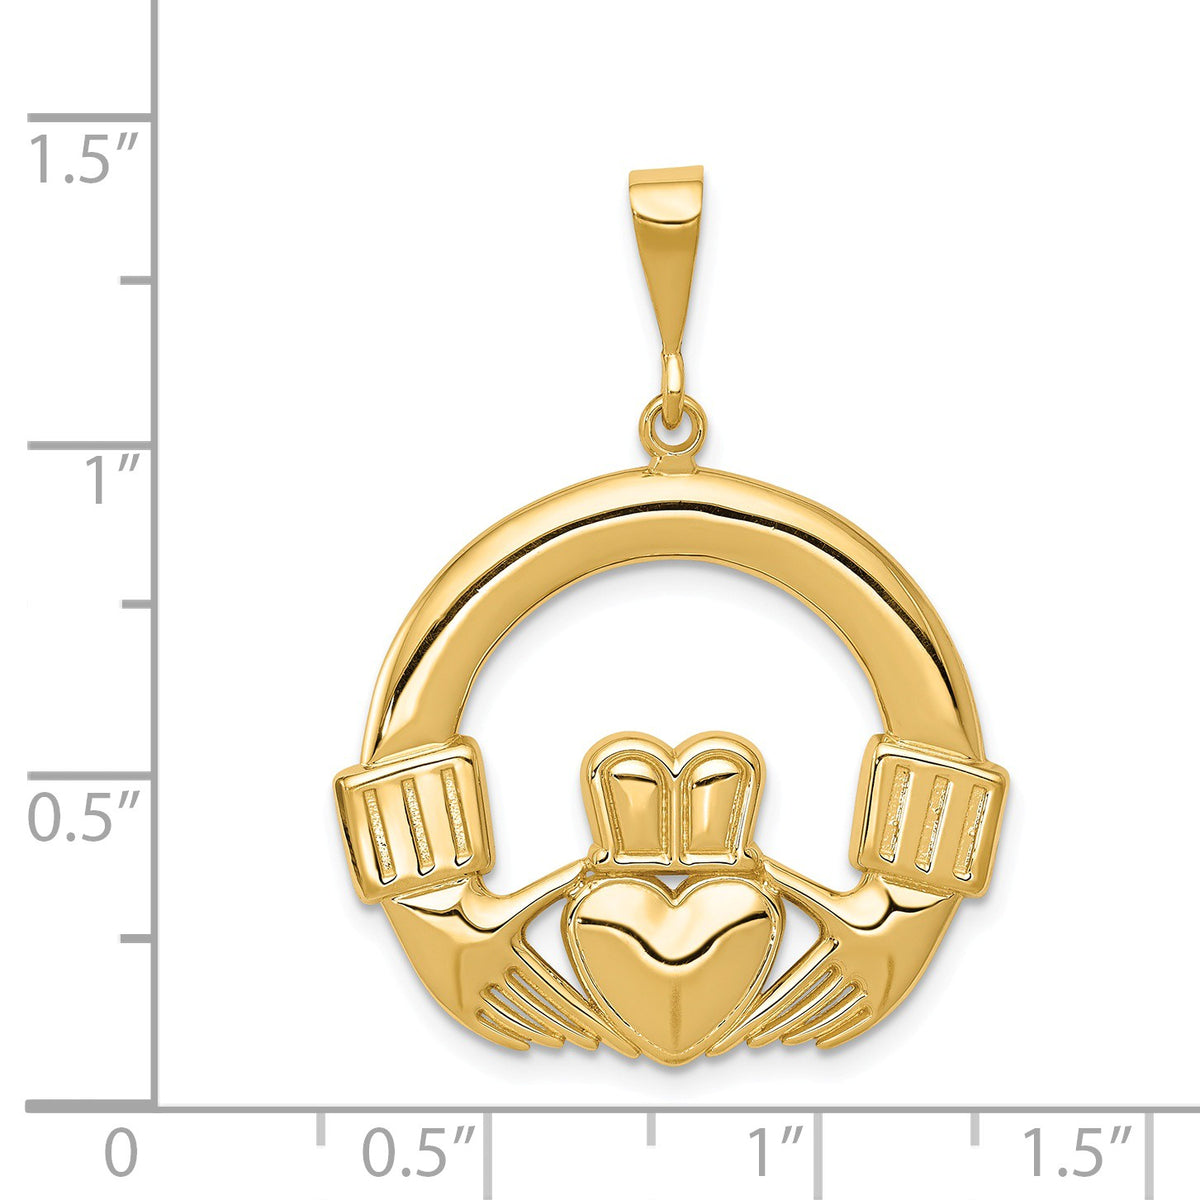 Alternate view of the 14k Yellow Gold Claddagh Pendant, 25mm by The Black Bow Jewelry Co.